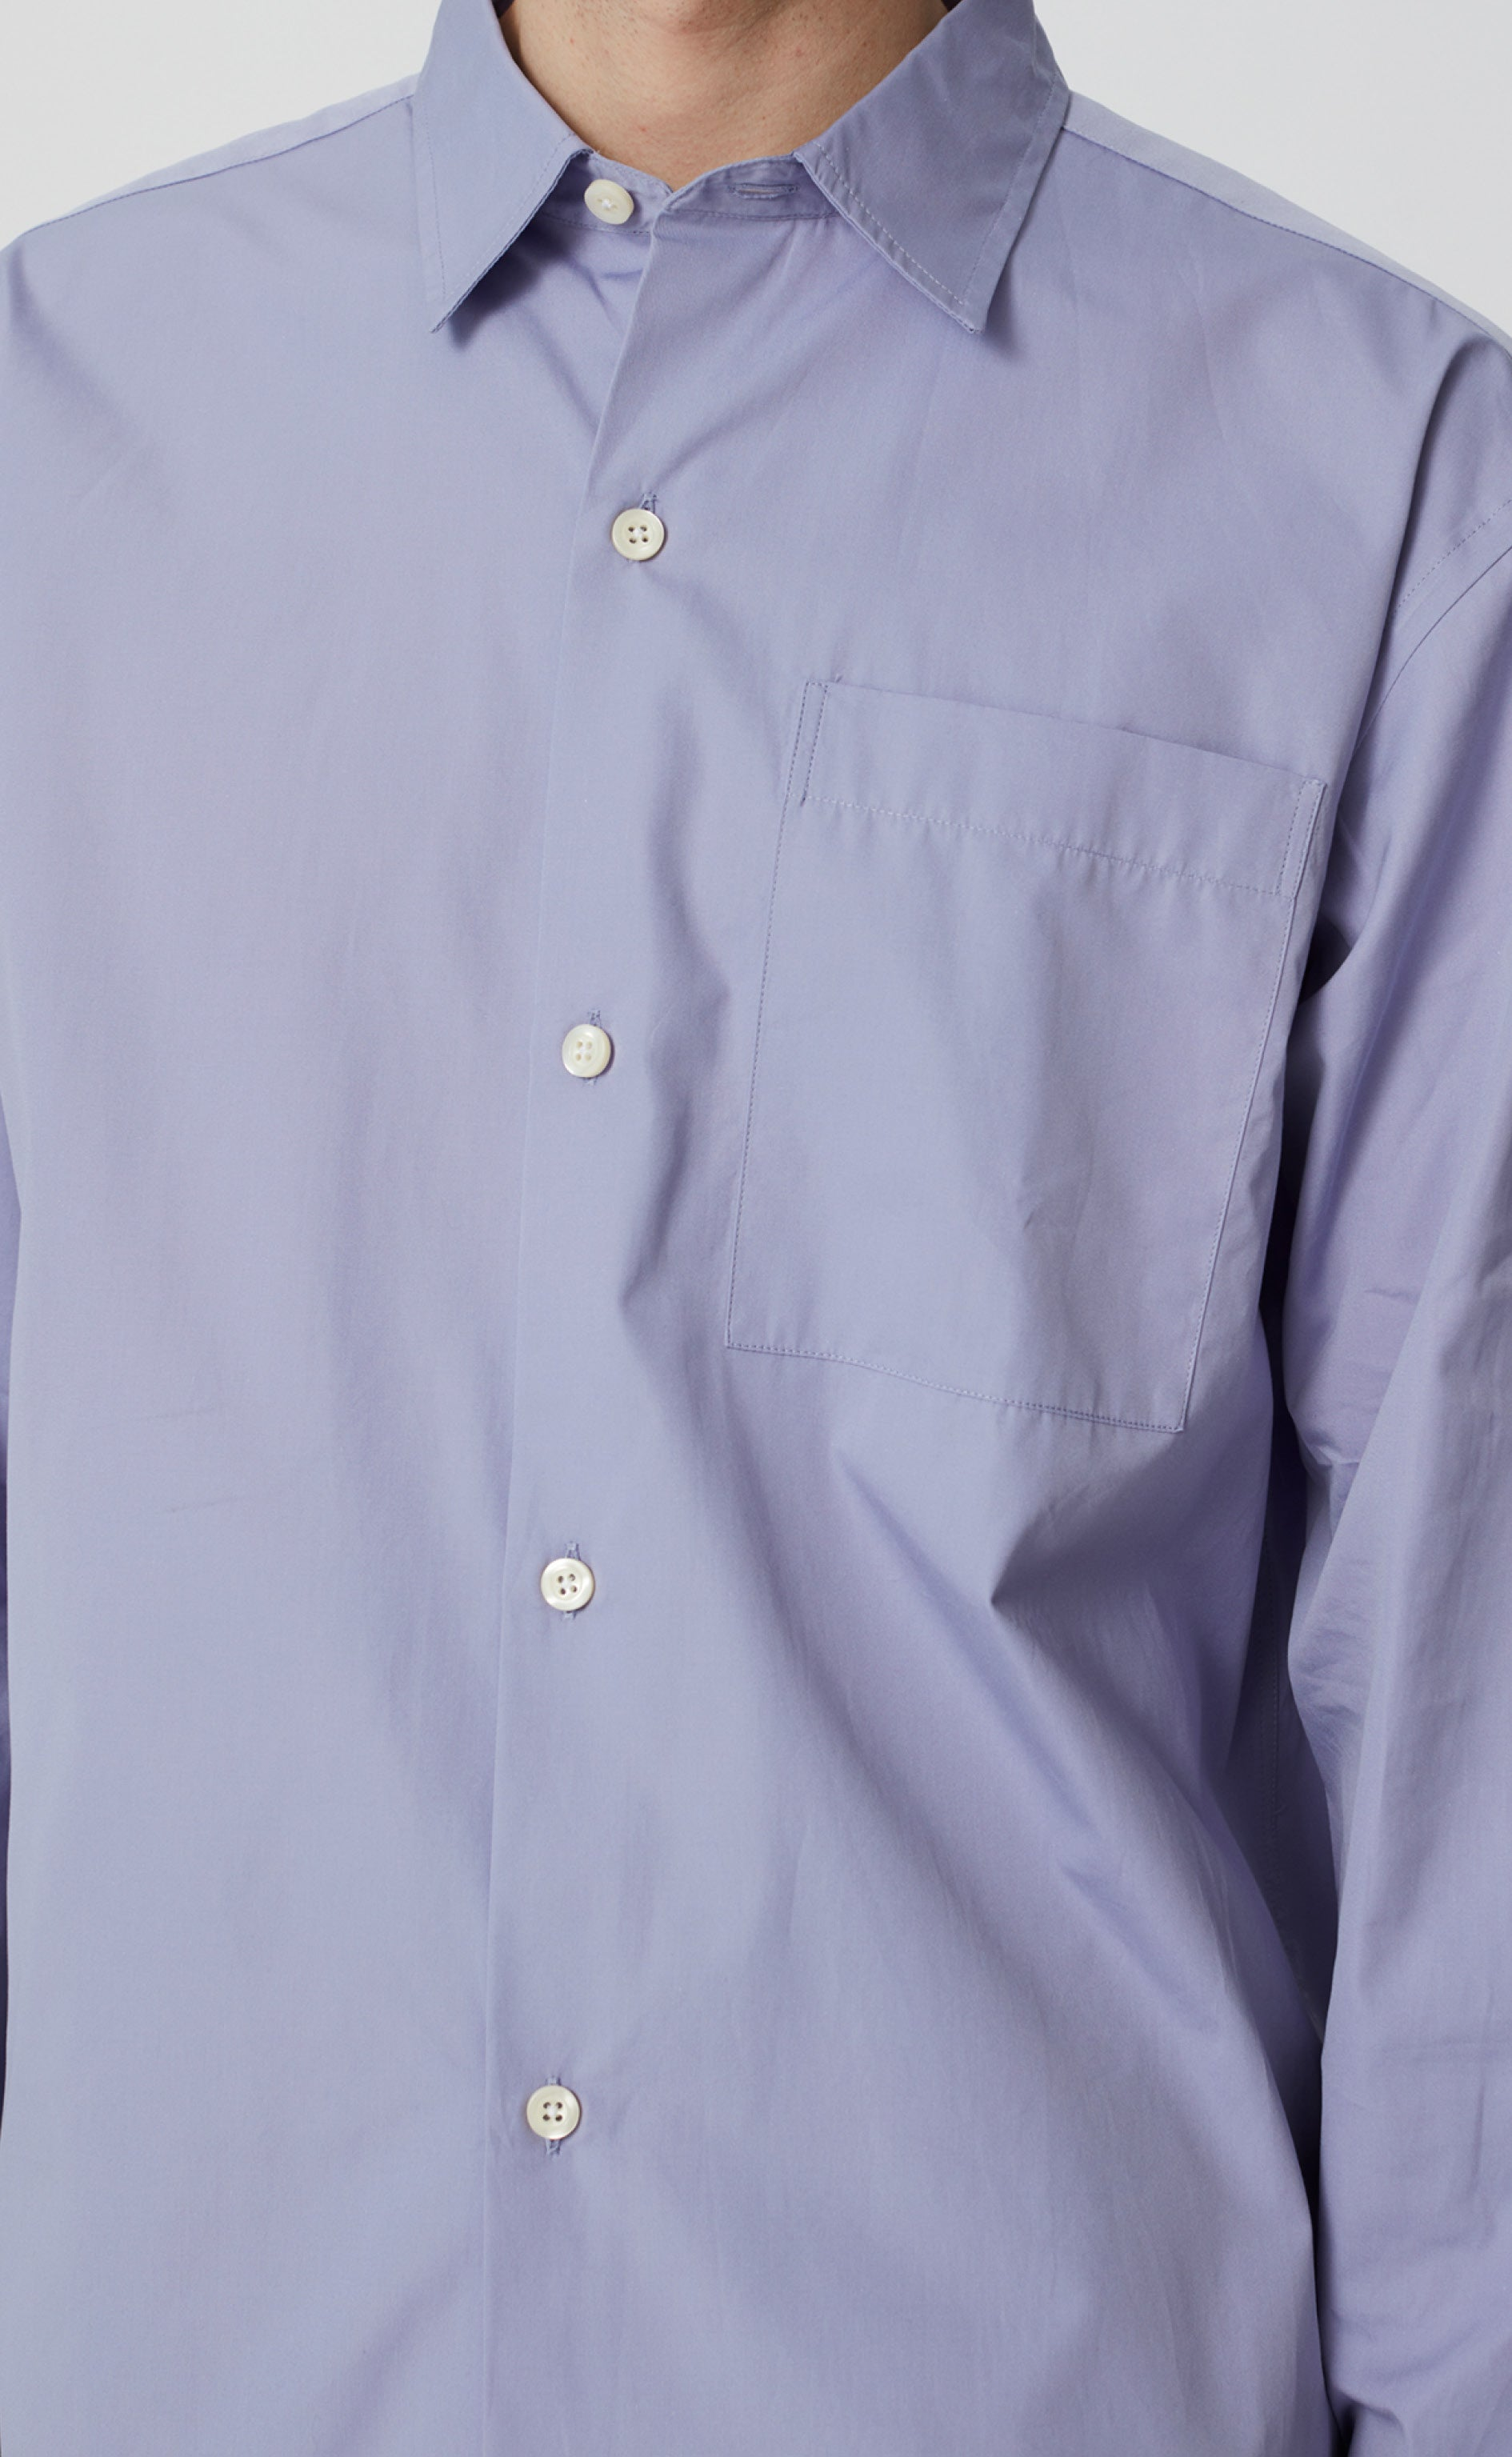 DISTANT SHIRT - PERIWINKLE